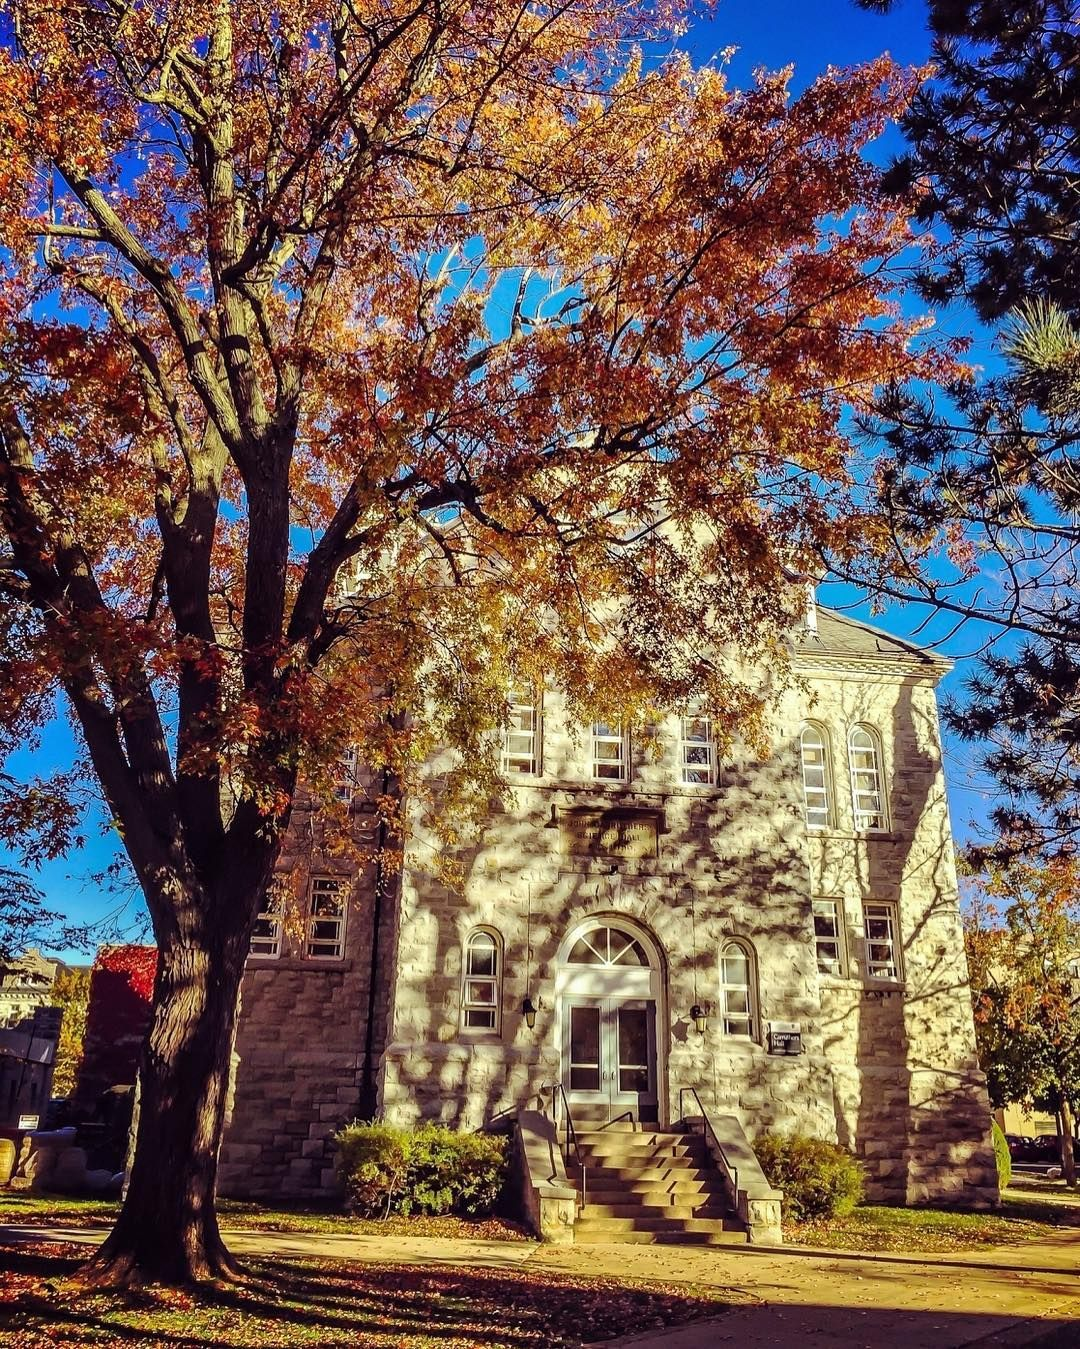 carruthers hall is one of the oldest buildings on campus and the